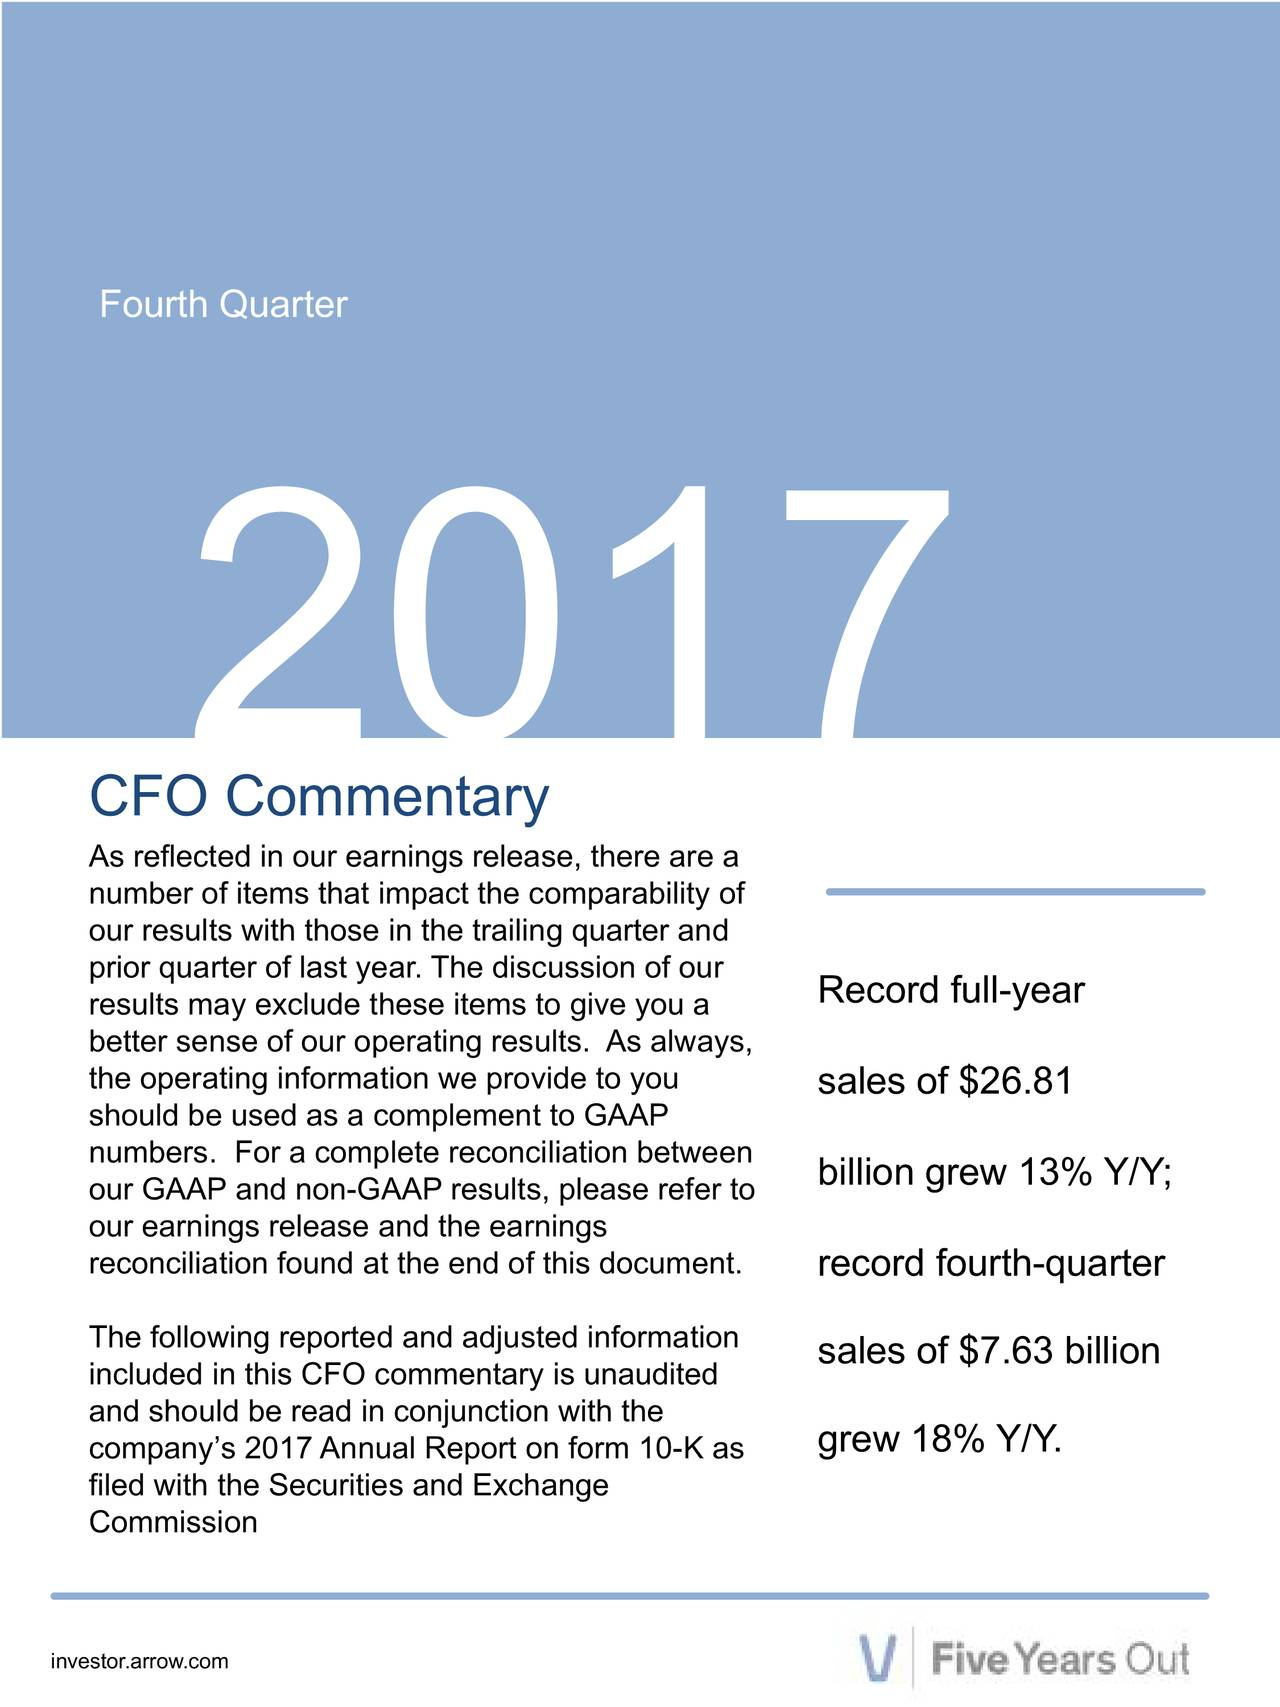 2017 CFO Commentary As reflected in our earnings release, there are a number of items that impact the comparability of our results with those in the trailing quarter and prior quarter of last year. The disRecord full-year better sense of our operating results. As always, the operating information we providsales of $26.81 should be used as a complement to GAAP numbers. For a complete reconciliatbillion grew 13% Y/Y; our GAAP and non-GAAP results, please refer to reconciliation found at the end of record fourth-quarter The following reported and adjustedsales of $7.63 billion included in this CFO commentary is unaudited company's 2017 Annual Report on form 10-K asY/Y. filed with the Securities and Exchange Commission investor.arrow.com